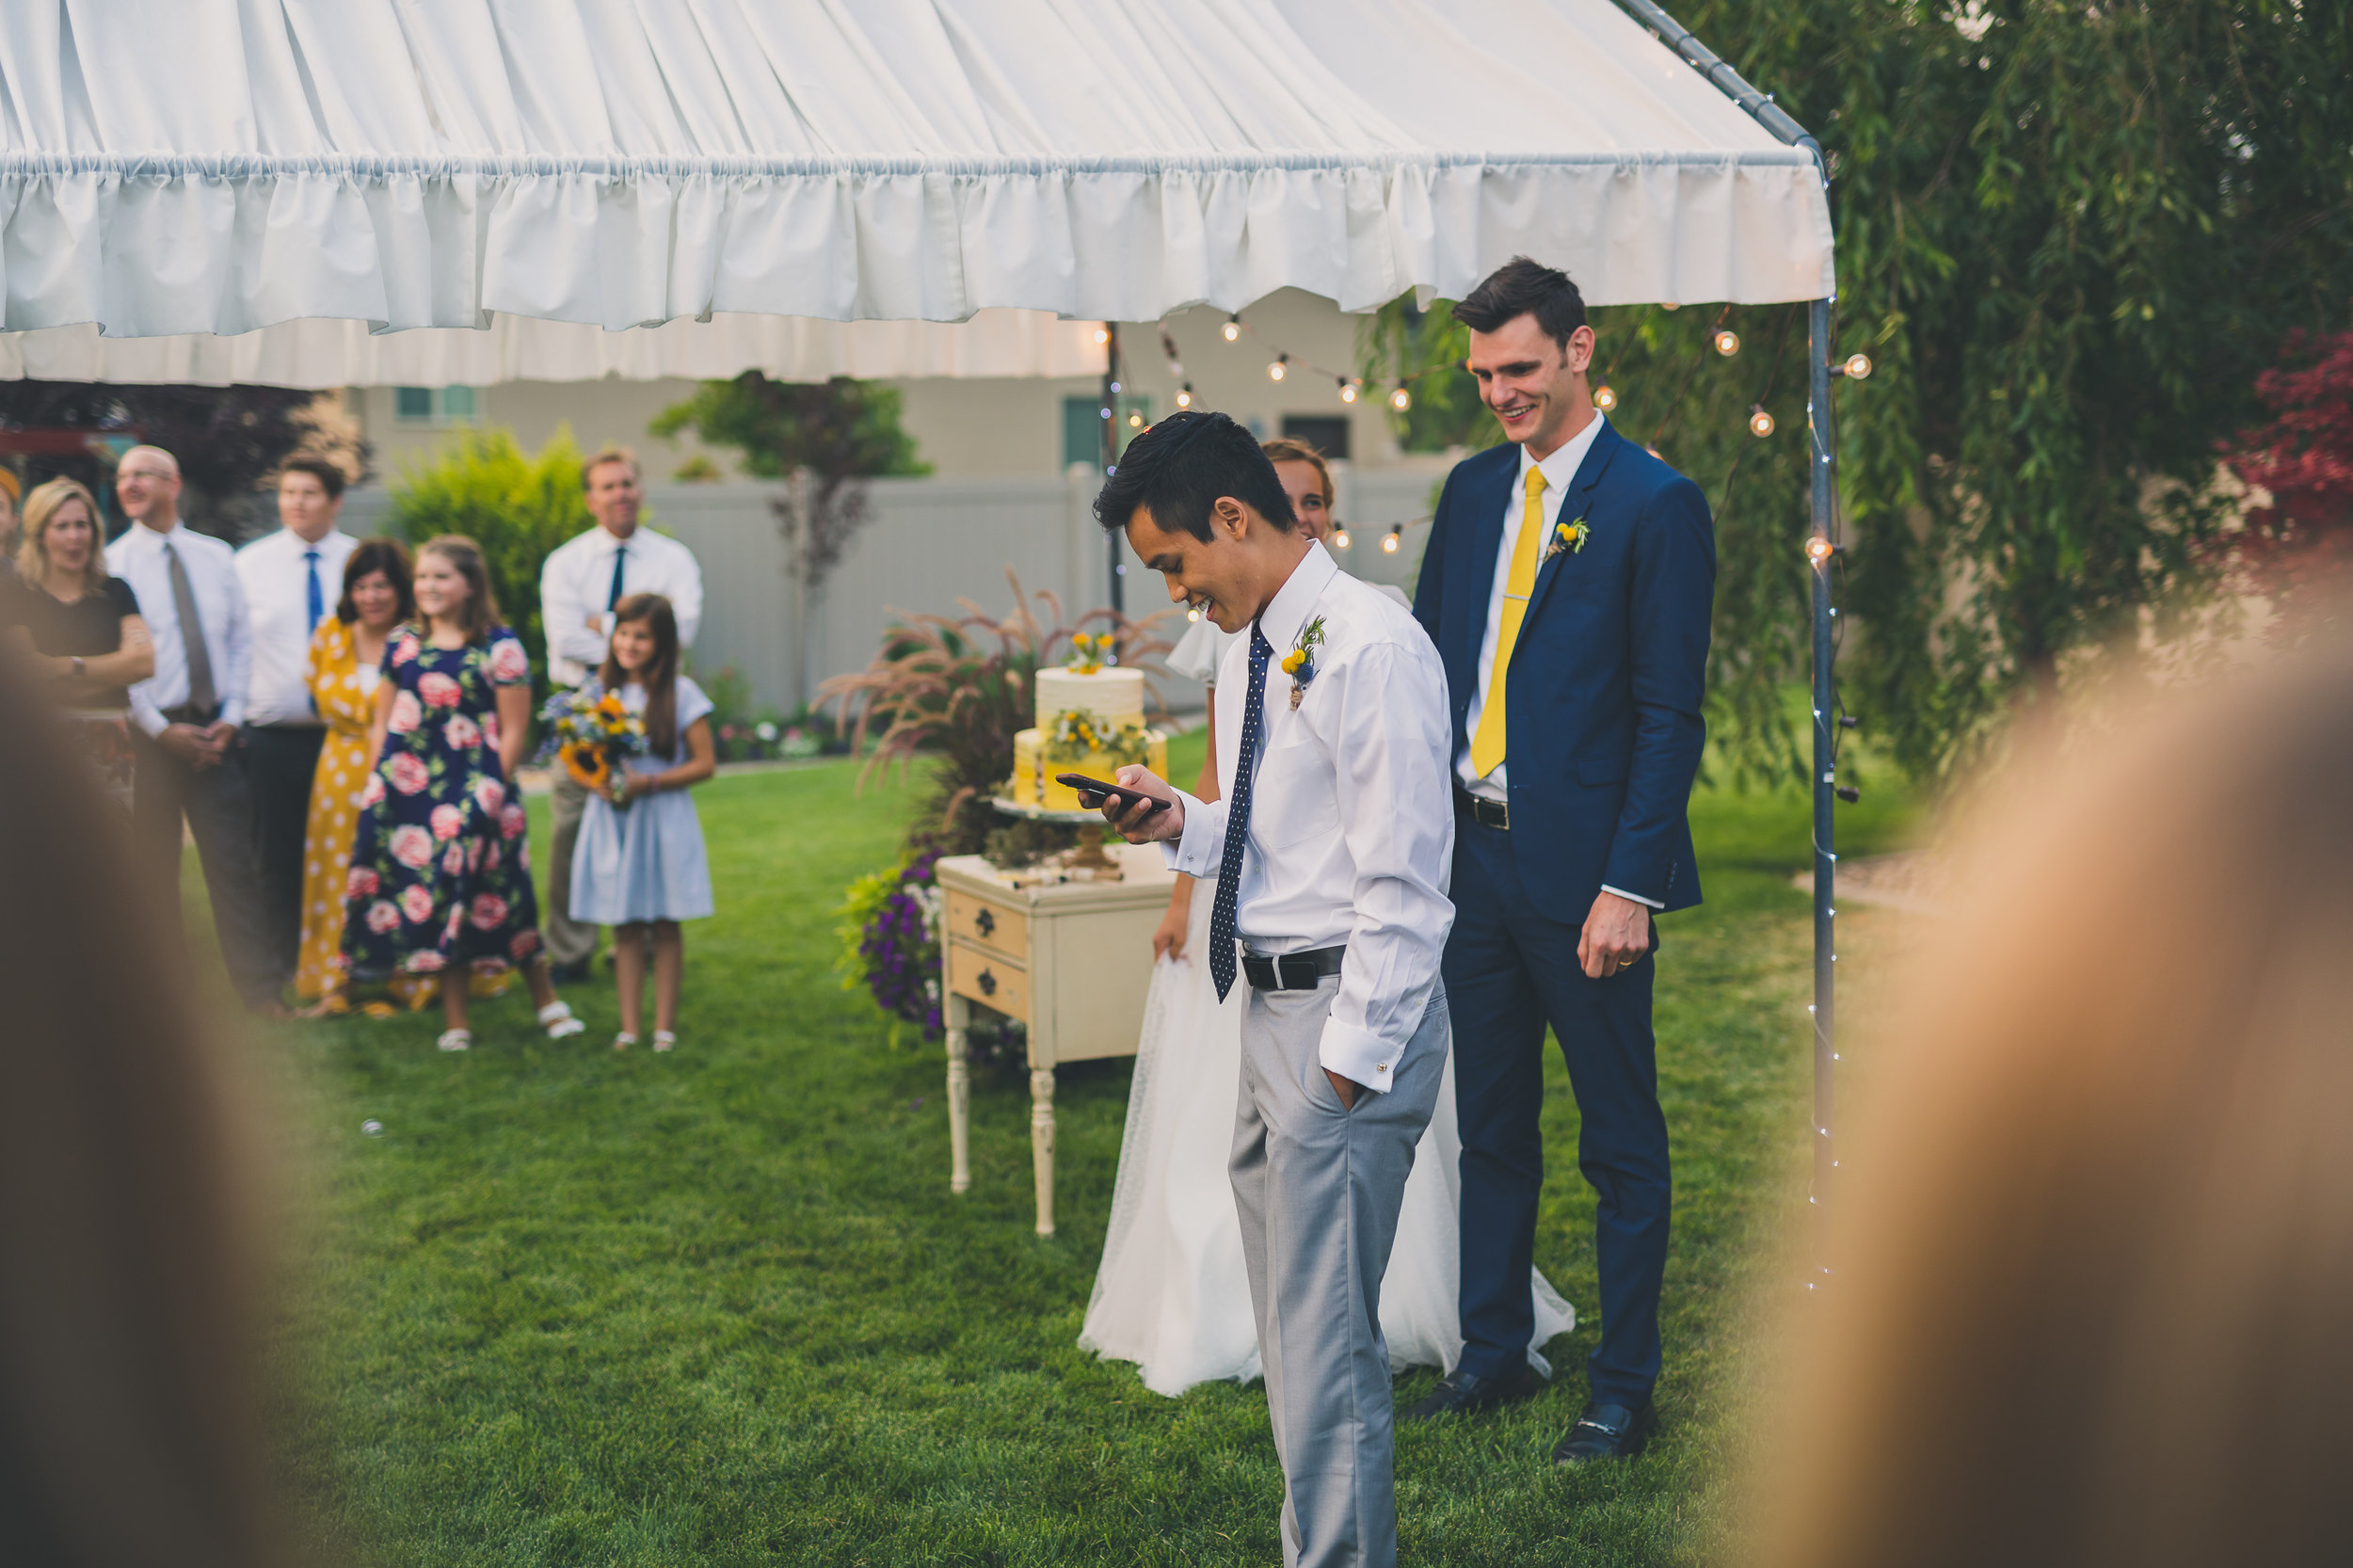 SydneyAndrew_Wed939.jpg